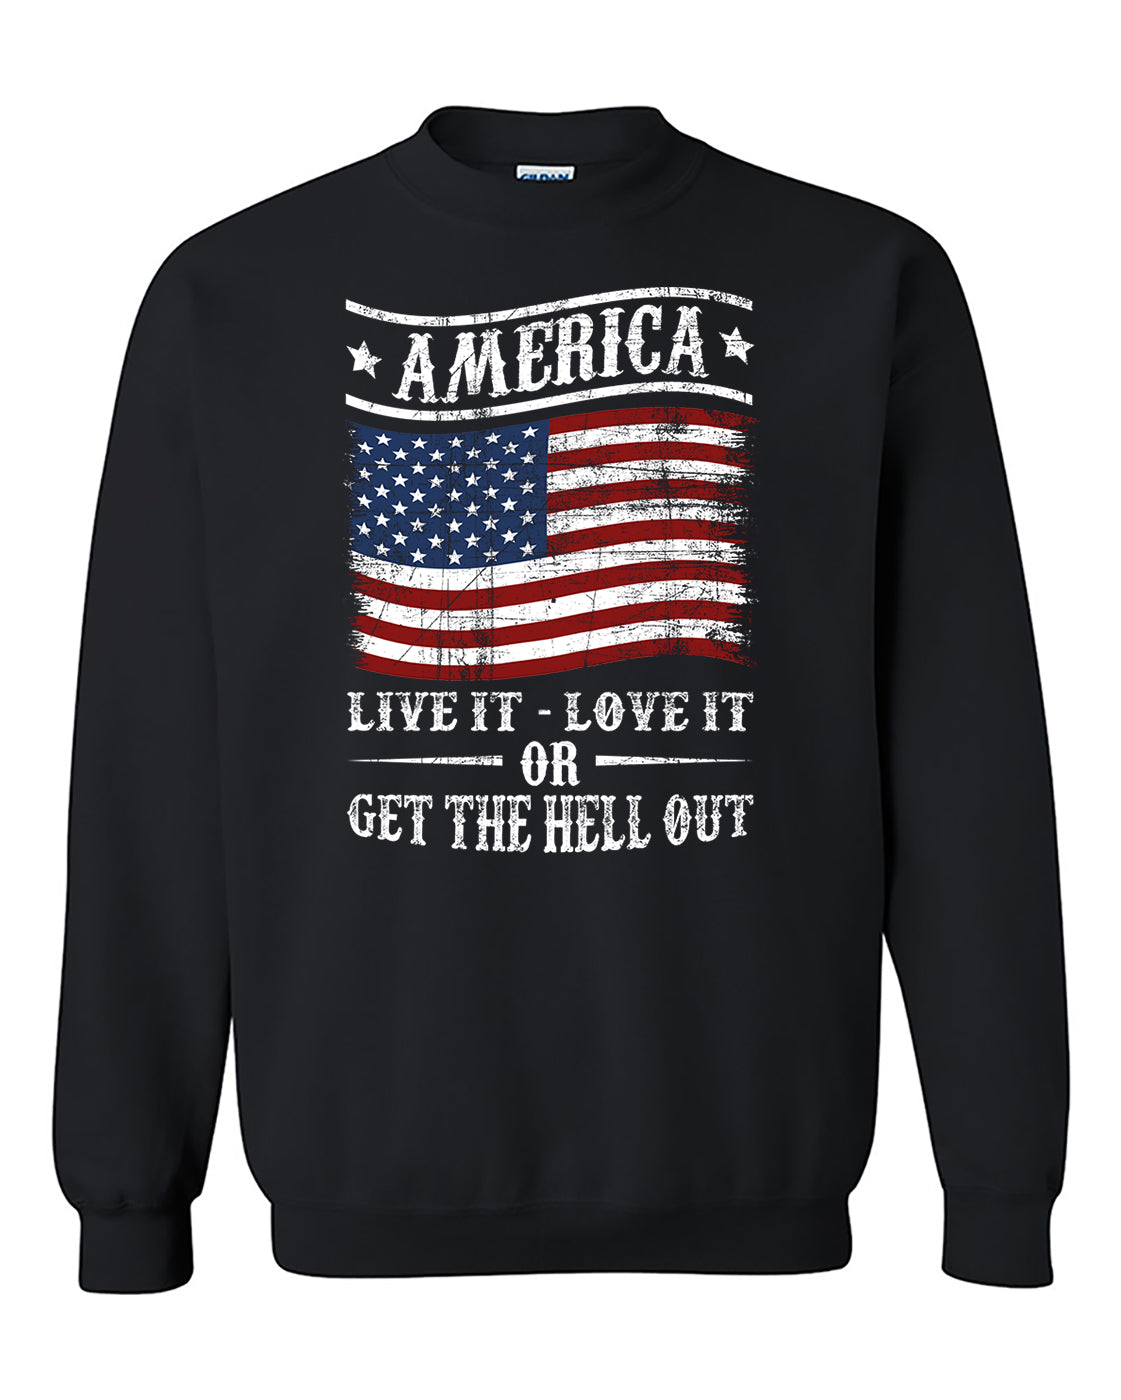 America Live it Love it or Get the Hell Out! 4th of July Independence day's shirt gift patriotic Crewneck Sweater